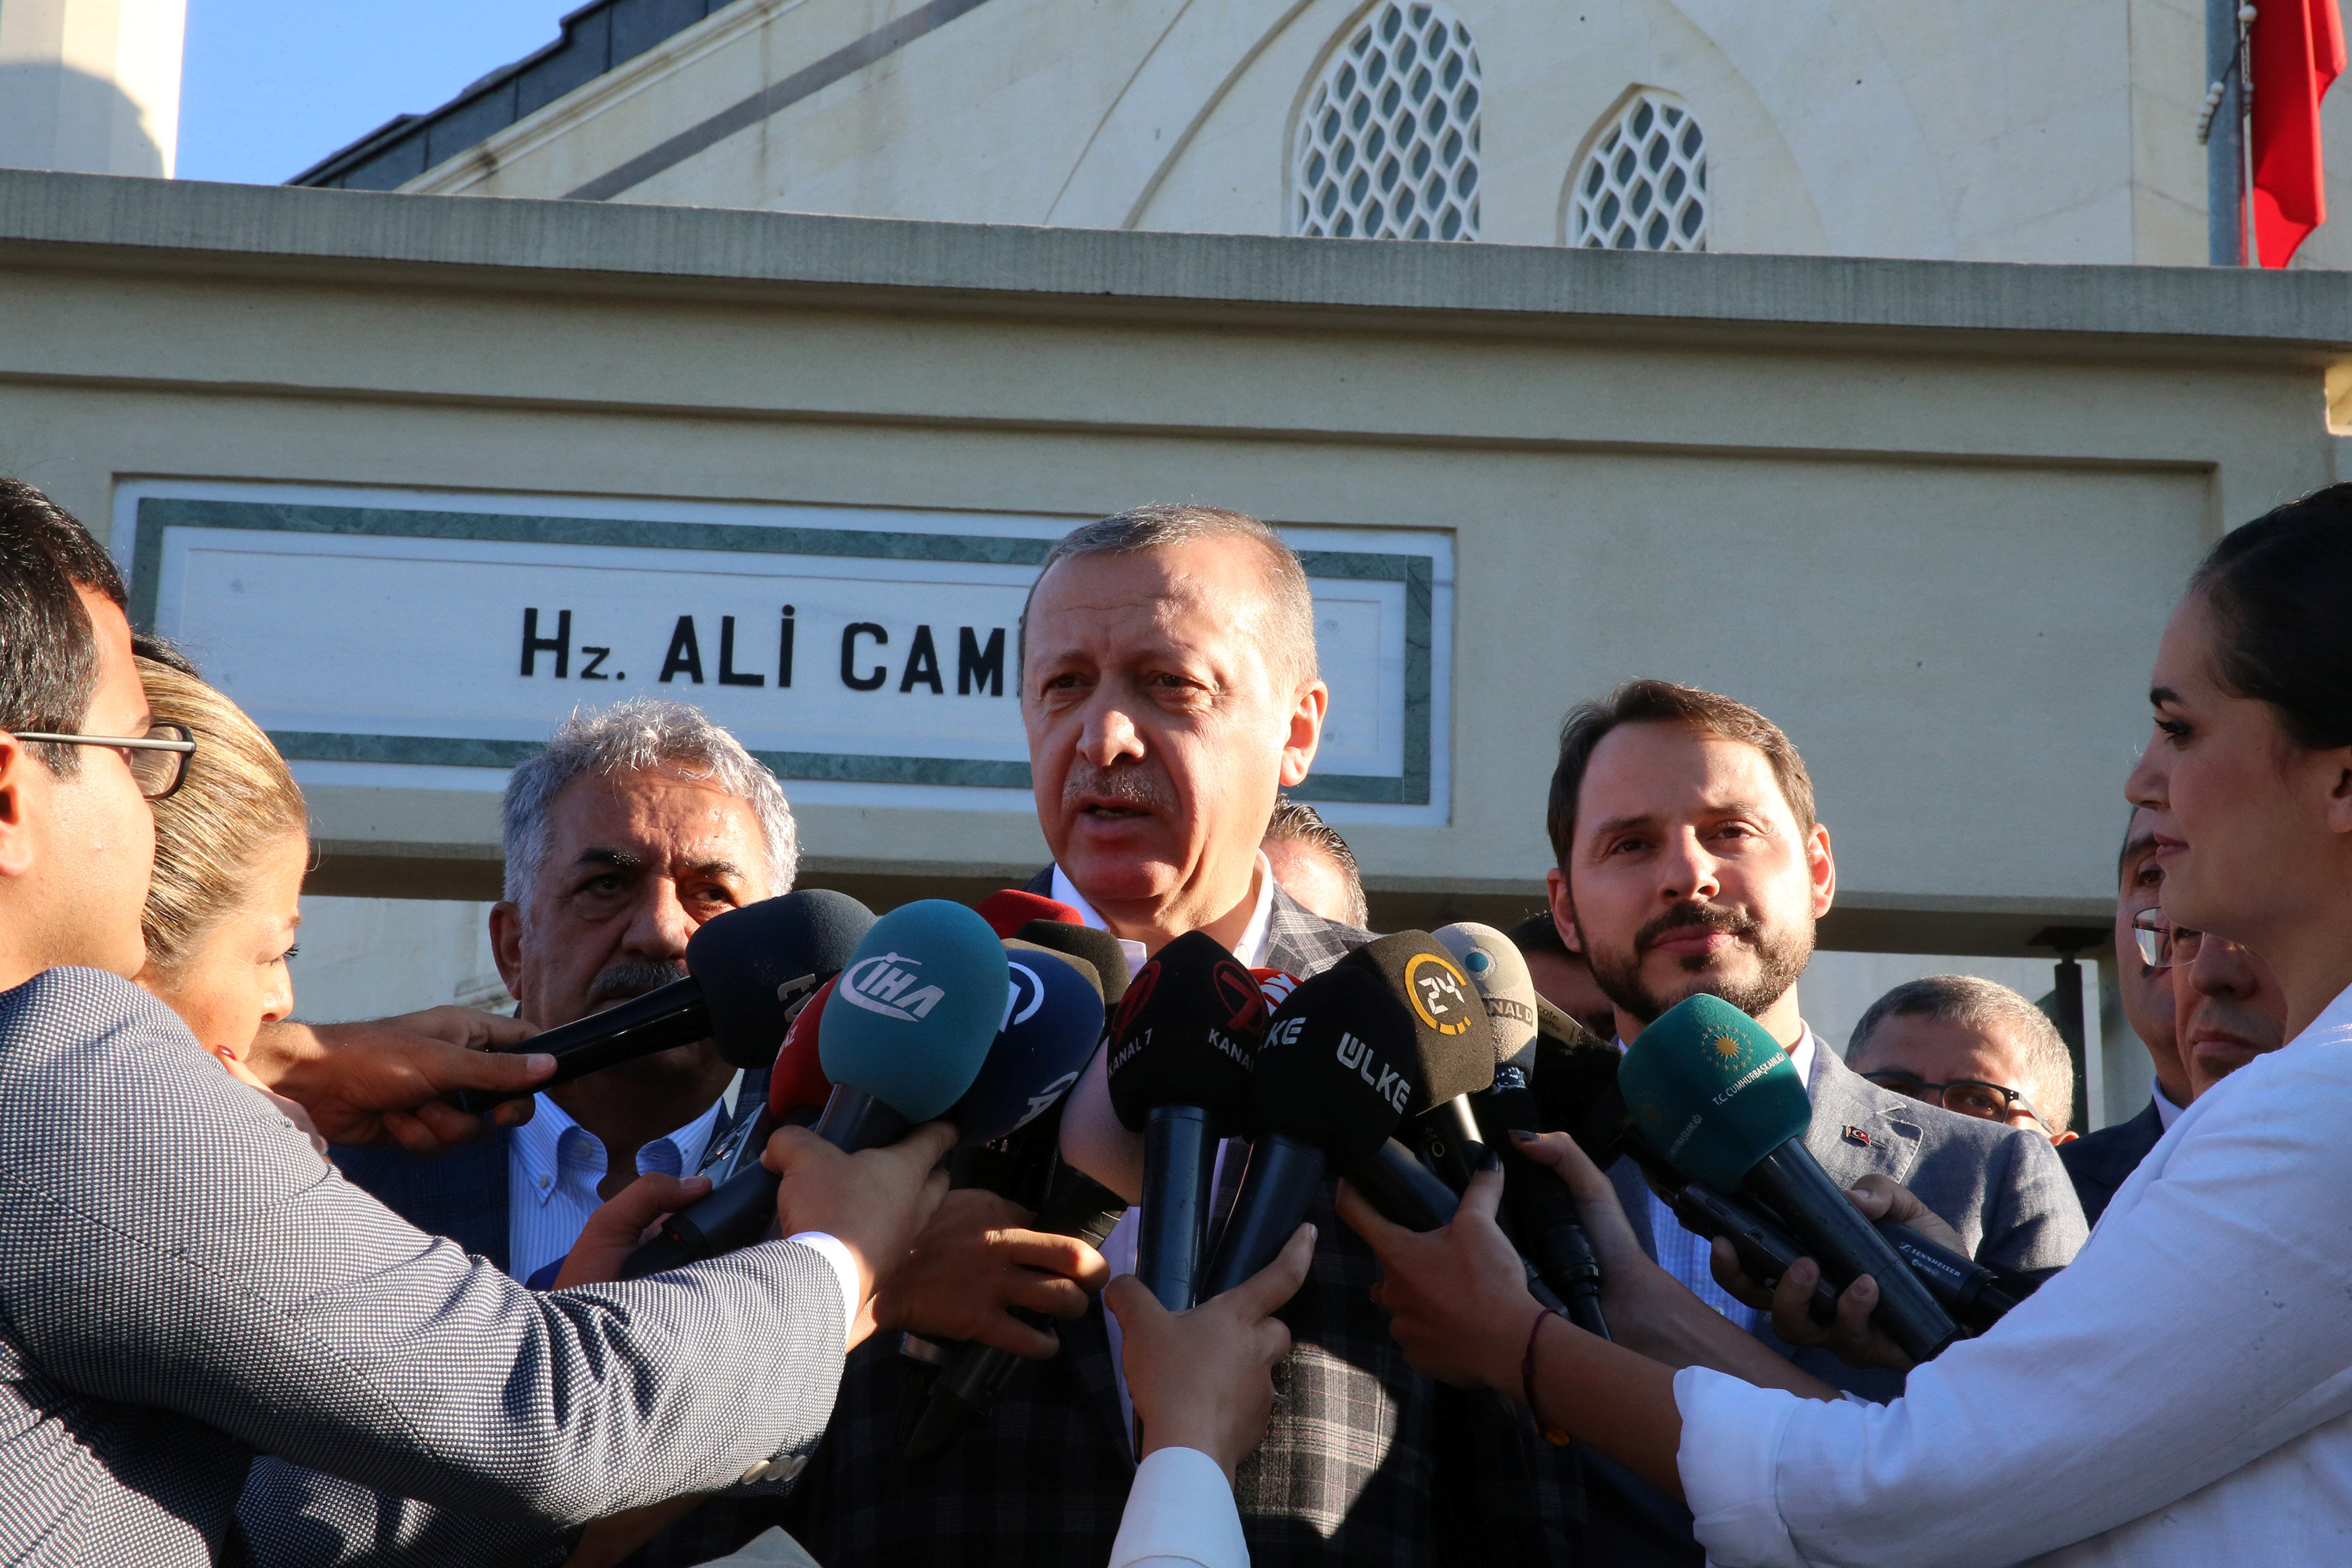 Turkish President Tayyip Erdogan talks to media after prayers for the Muslim Eid al-Adha celebration in Istanbul, Turkey September 1, 2017. Murat Cetinmuhurdar/Presidential Palace/Handout via REUTERS